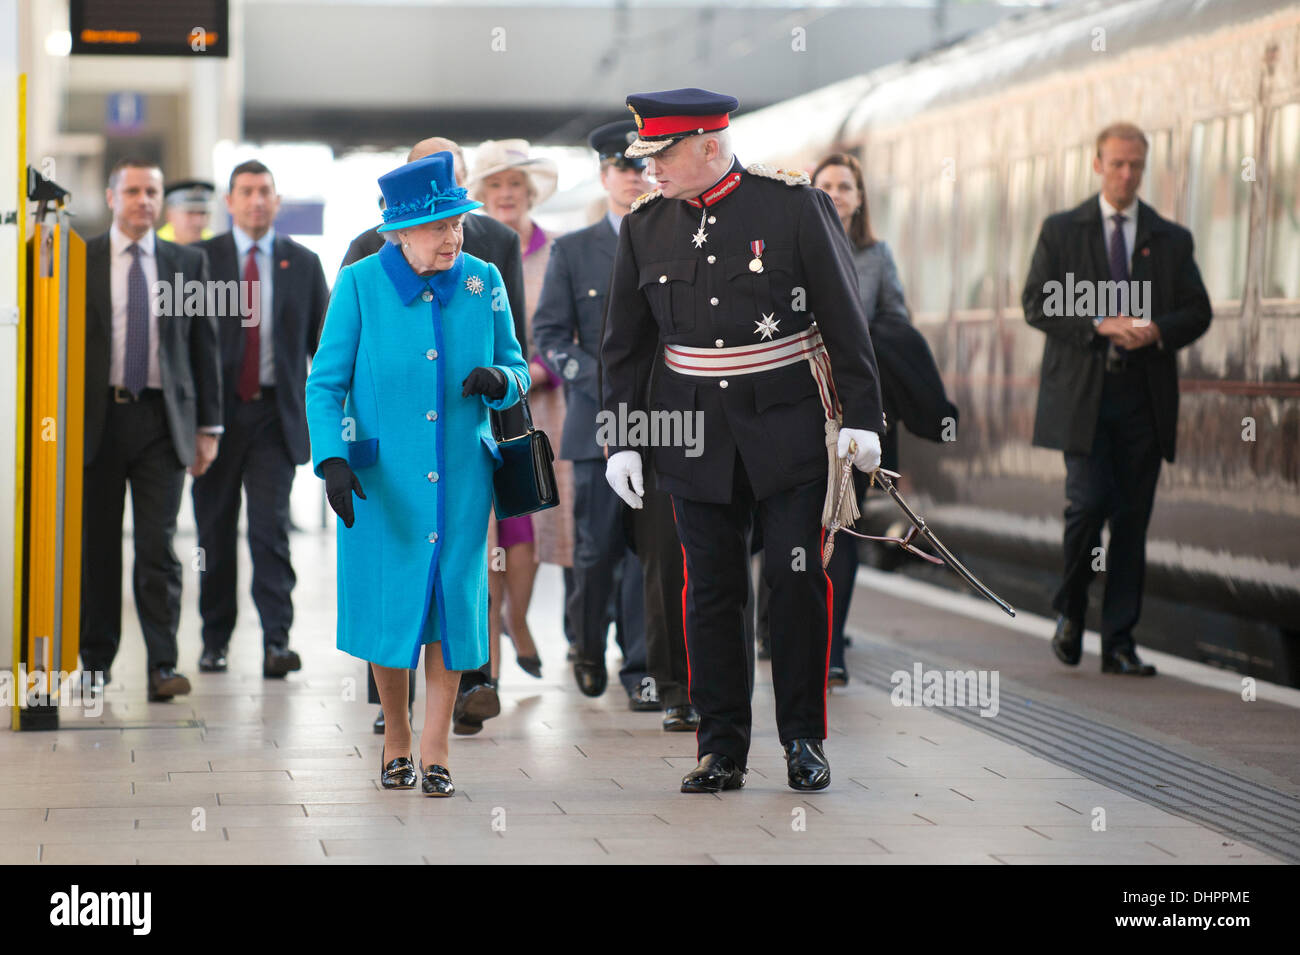 Manchester, UK. 14th November, 2013. Queen Elizabeth II and Prince Philip, Duke of Edinburgh arrive at Piccadilly Stock Photo